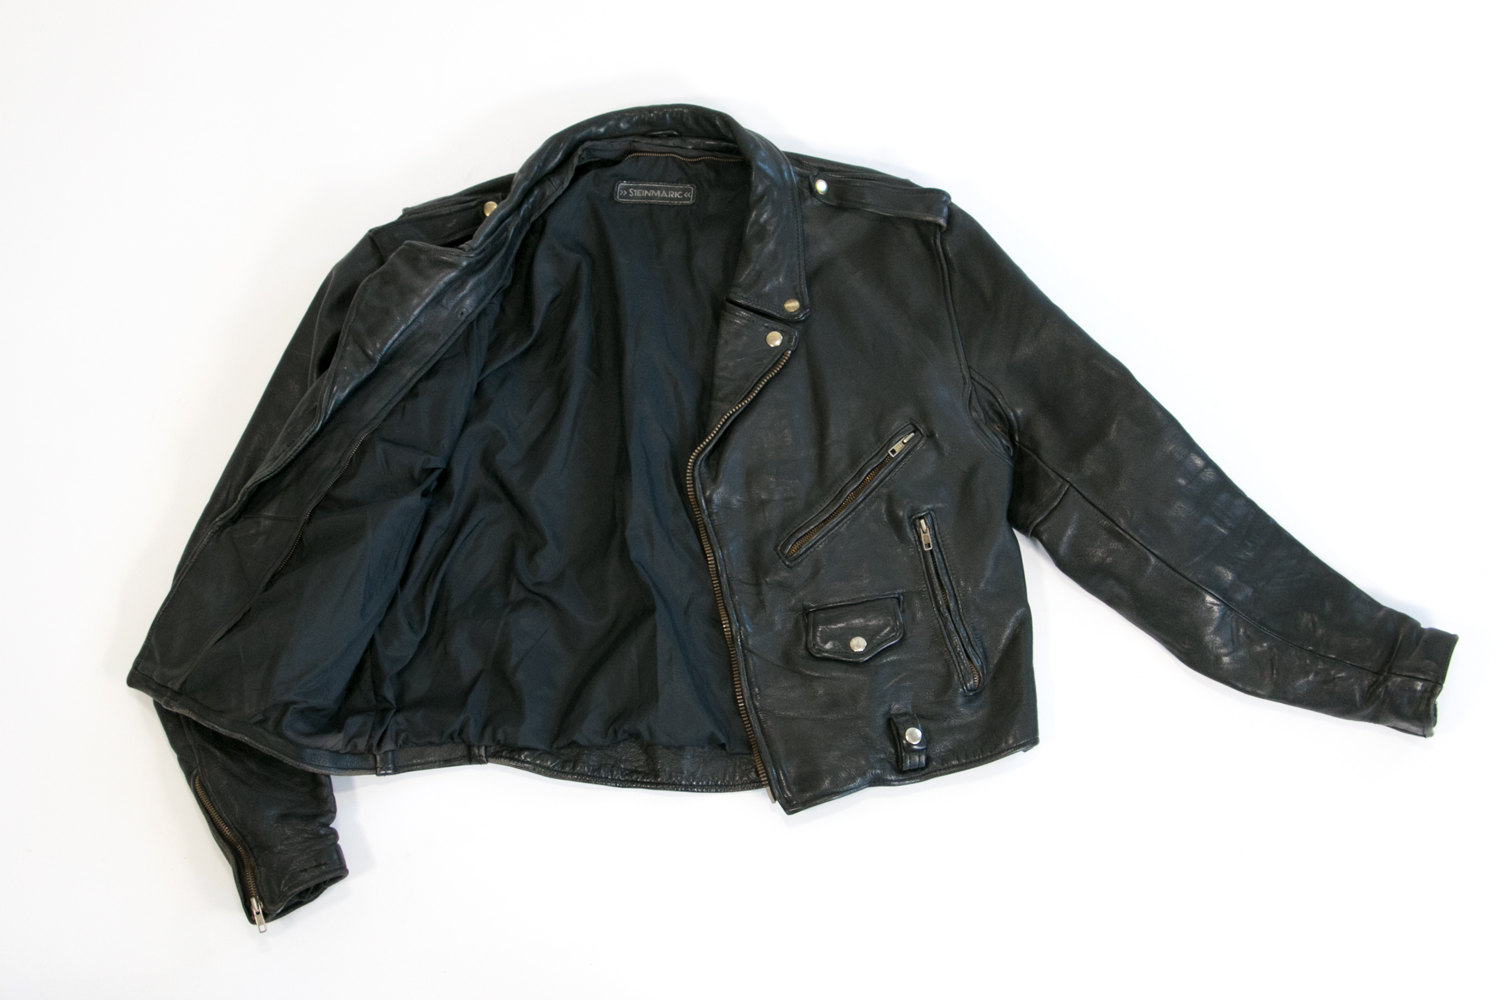 Vintage Black Leather Motorcycle, Rocker Jacket // L - XL //  Highest Quality Thick Leather w Brass Buttons  // Hipster, Indie, Punk, Biker